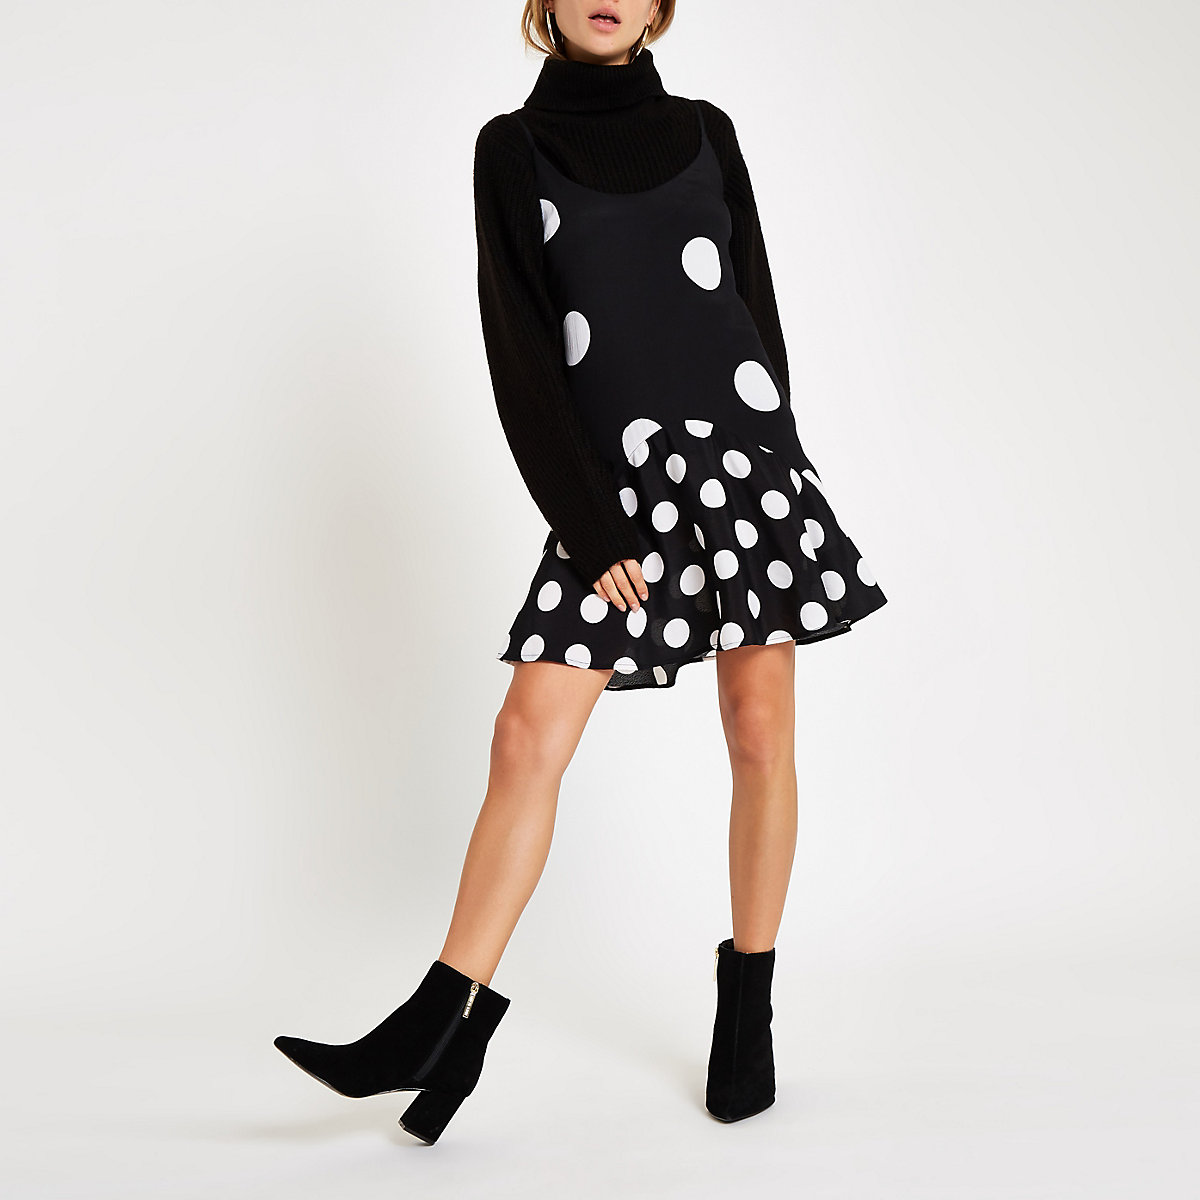 Black polka dot frill hem slip dress